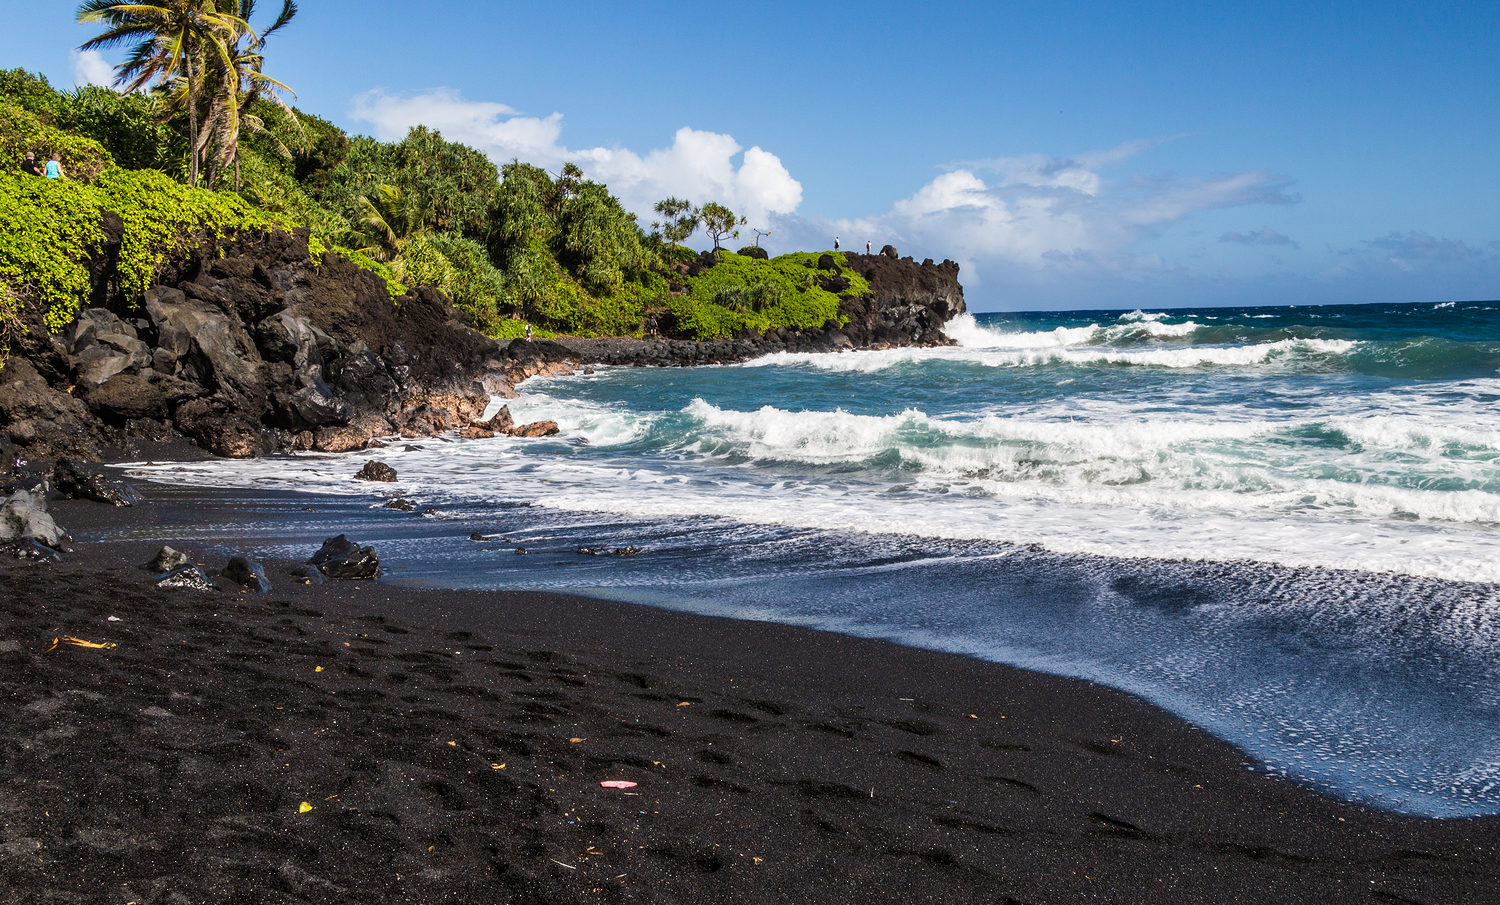 Black Sand Beach, Road to Hana GyPSy Guide Driving Tour App